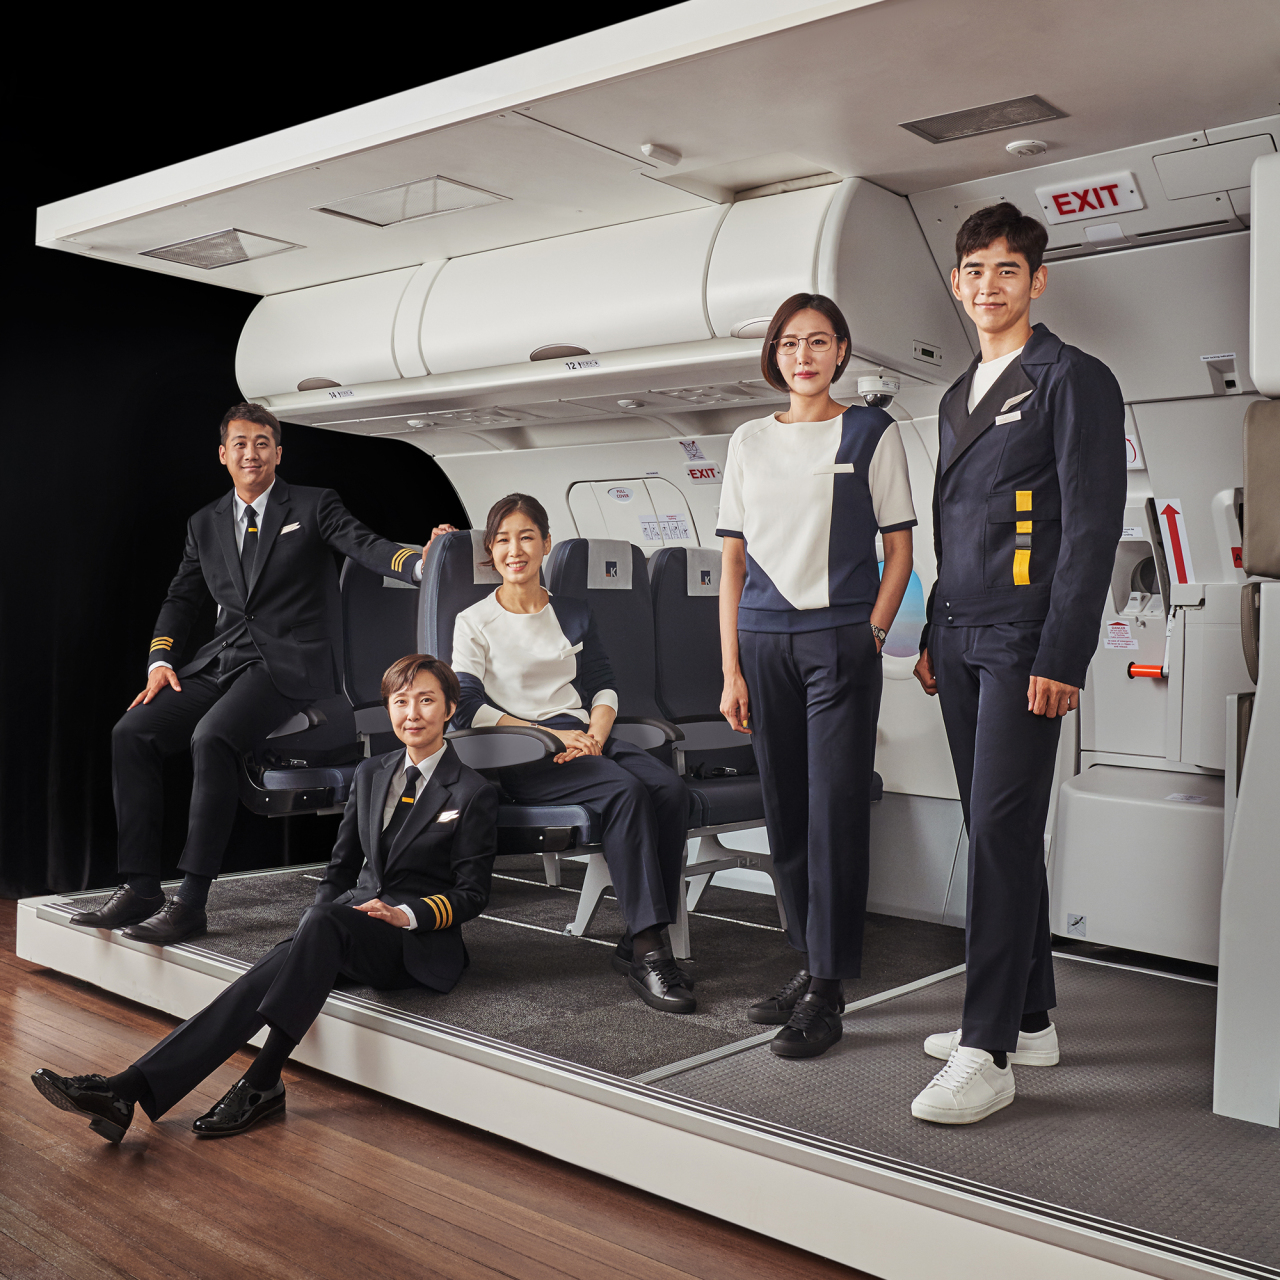 Aero K staff wear the airline's gender-neutral uniforms. (Aero K)